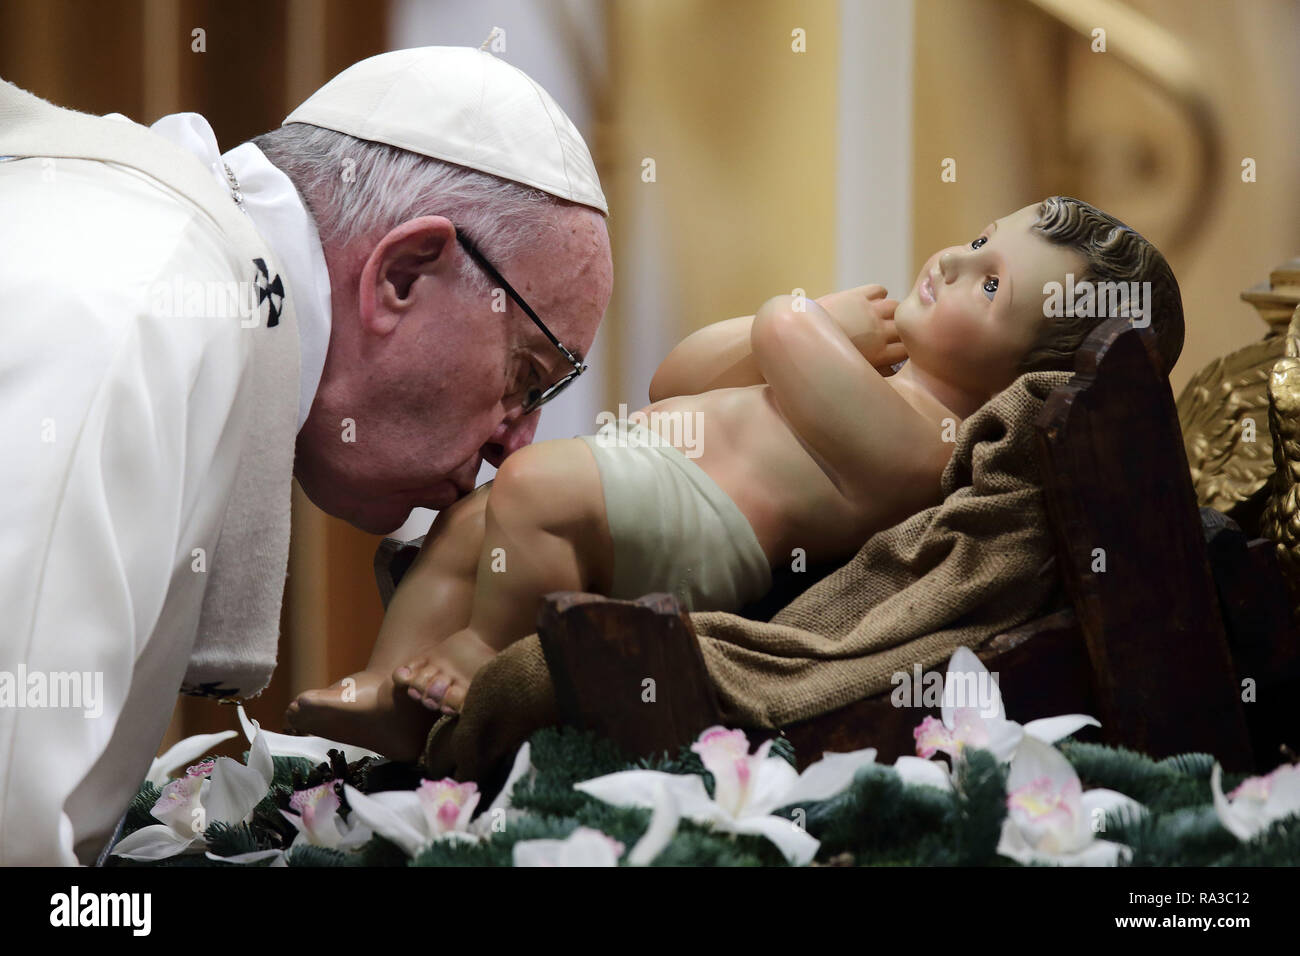 Vatican City. January 1, 2019 - Vatican City (Holy See) POPE FRANCIS celebrates mass in the solemnity of Mary Most Holy in St. Peter's Basilica at the Vatican. Credit Image: © Evandro Inetti via ZUMA Wire) Credit: Evandro Inetti/ZUMA Wire/Alamy Live News - Stock Image